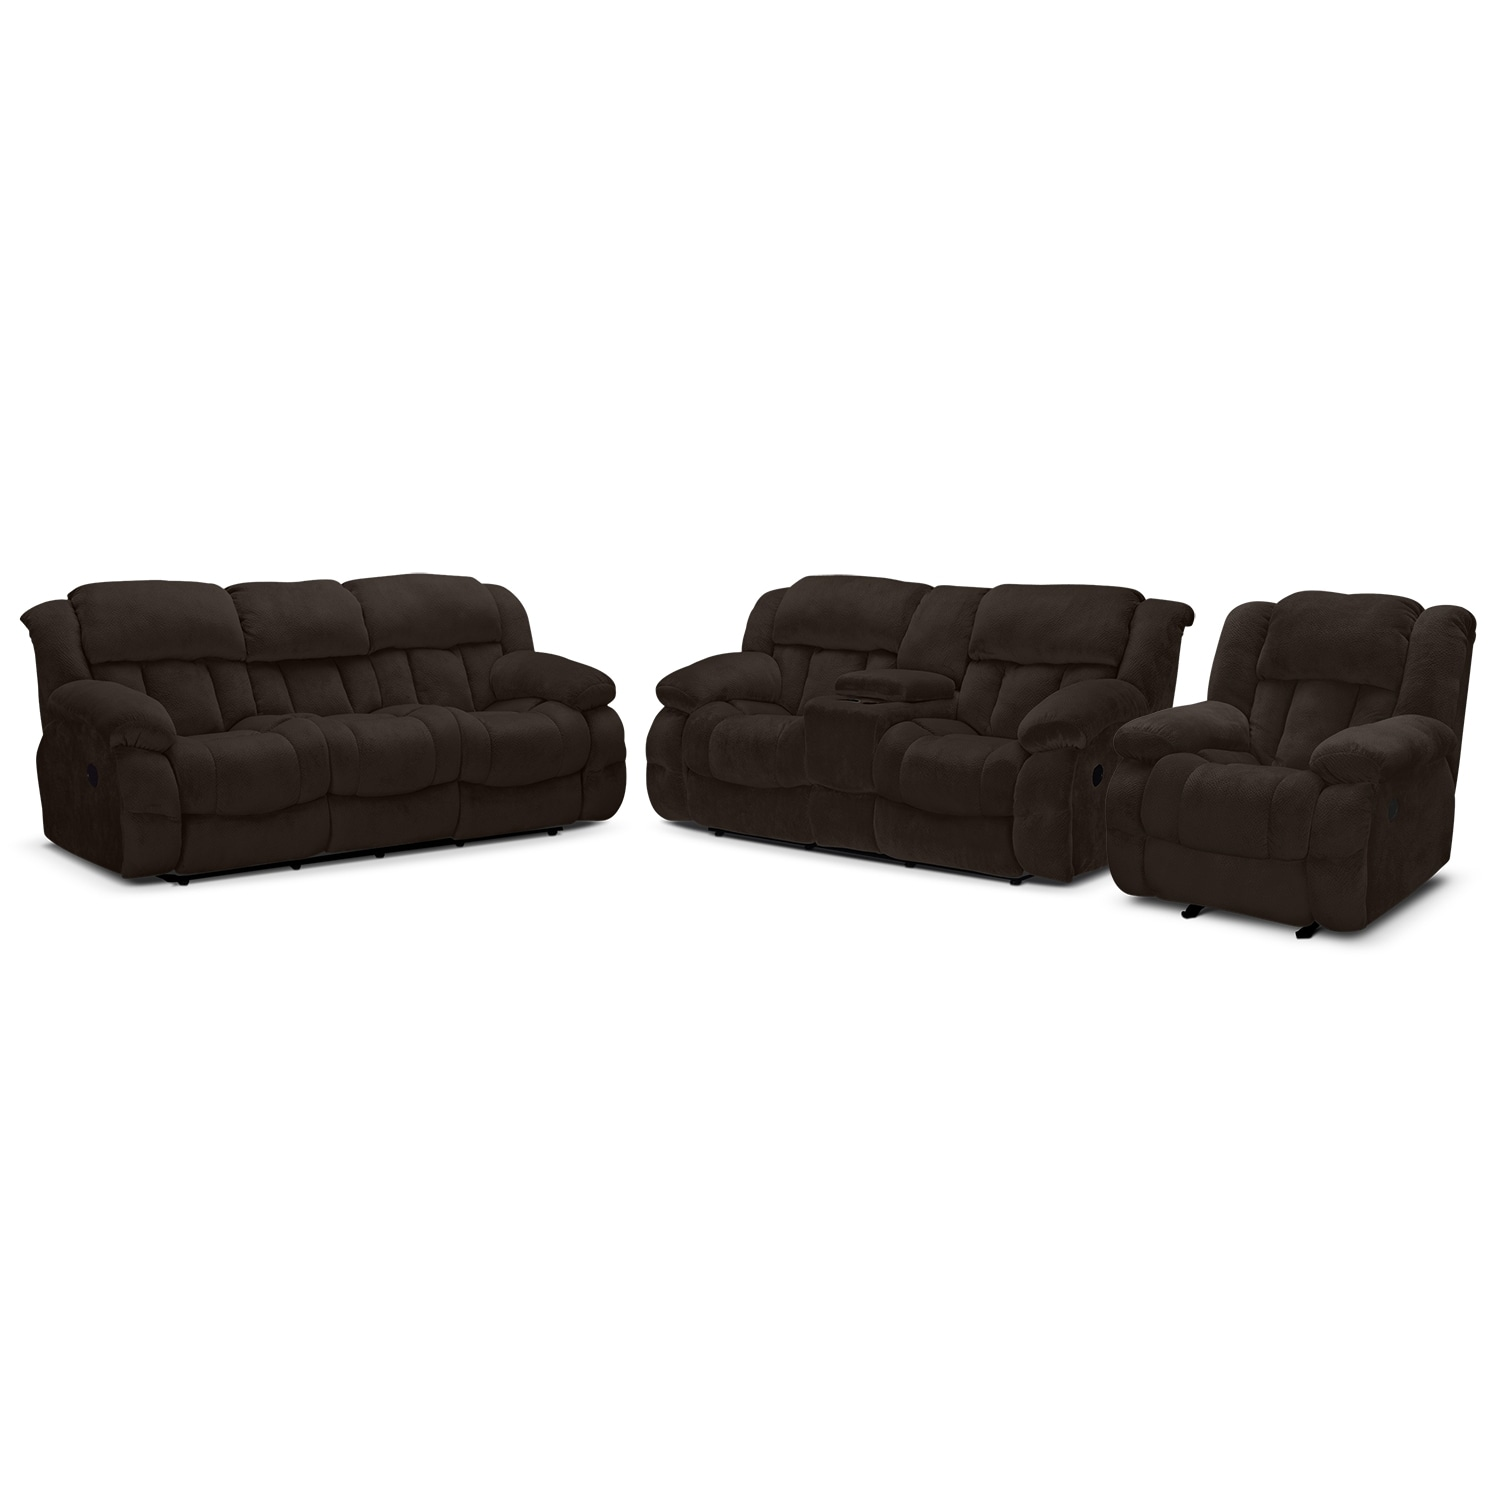 Park City Dual Reclining Sofa, Loveseat and Glider Recliner Set - Chocolate